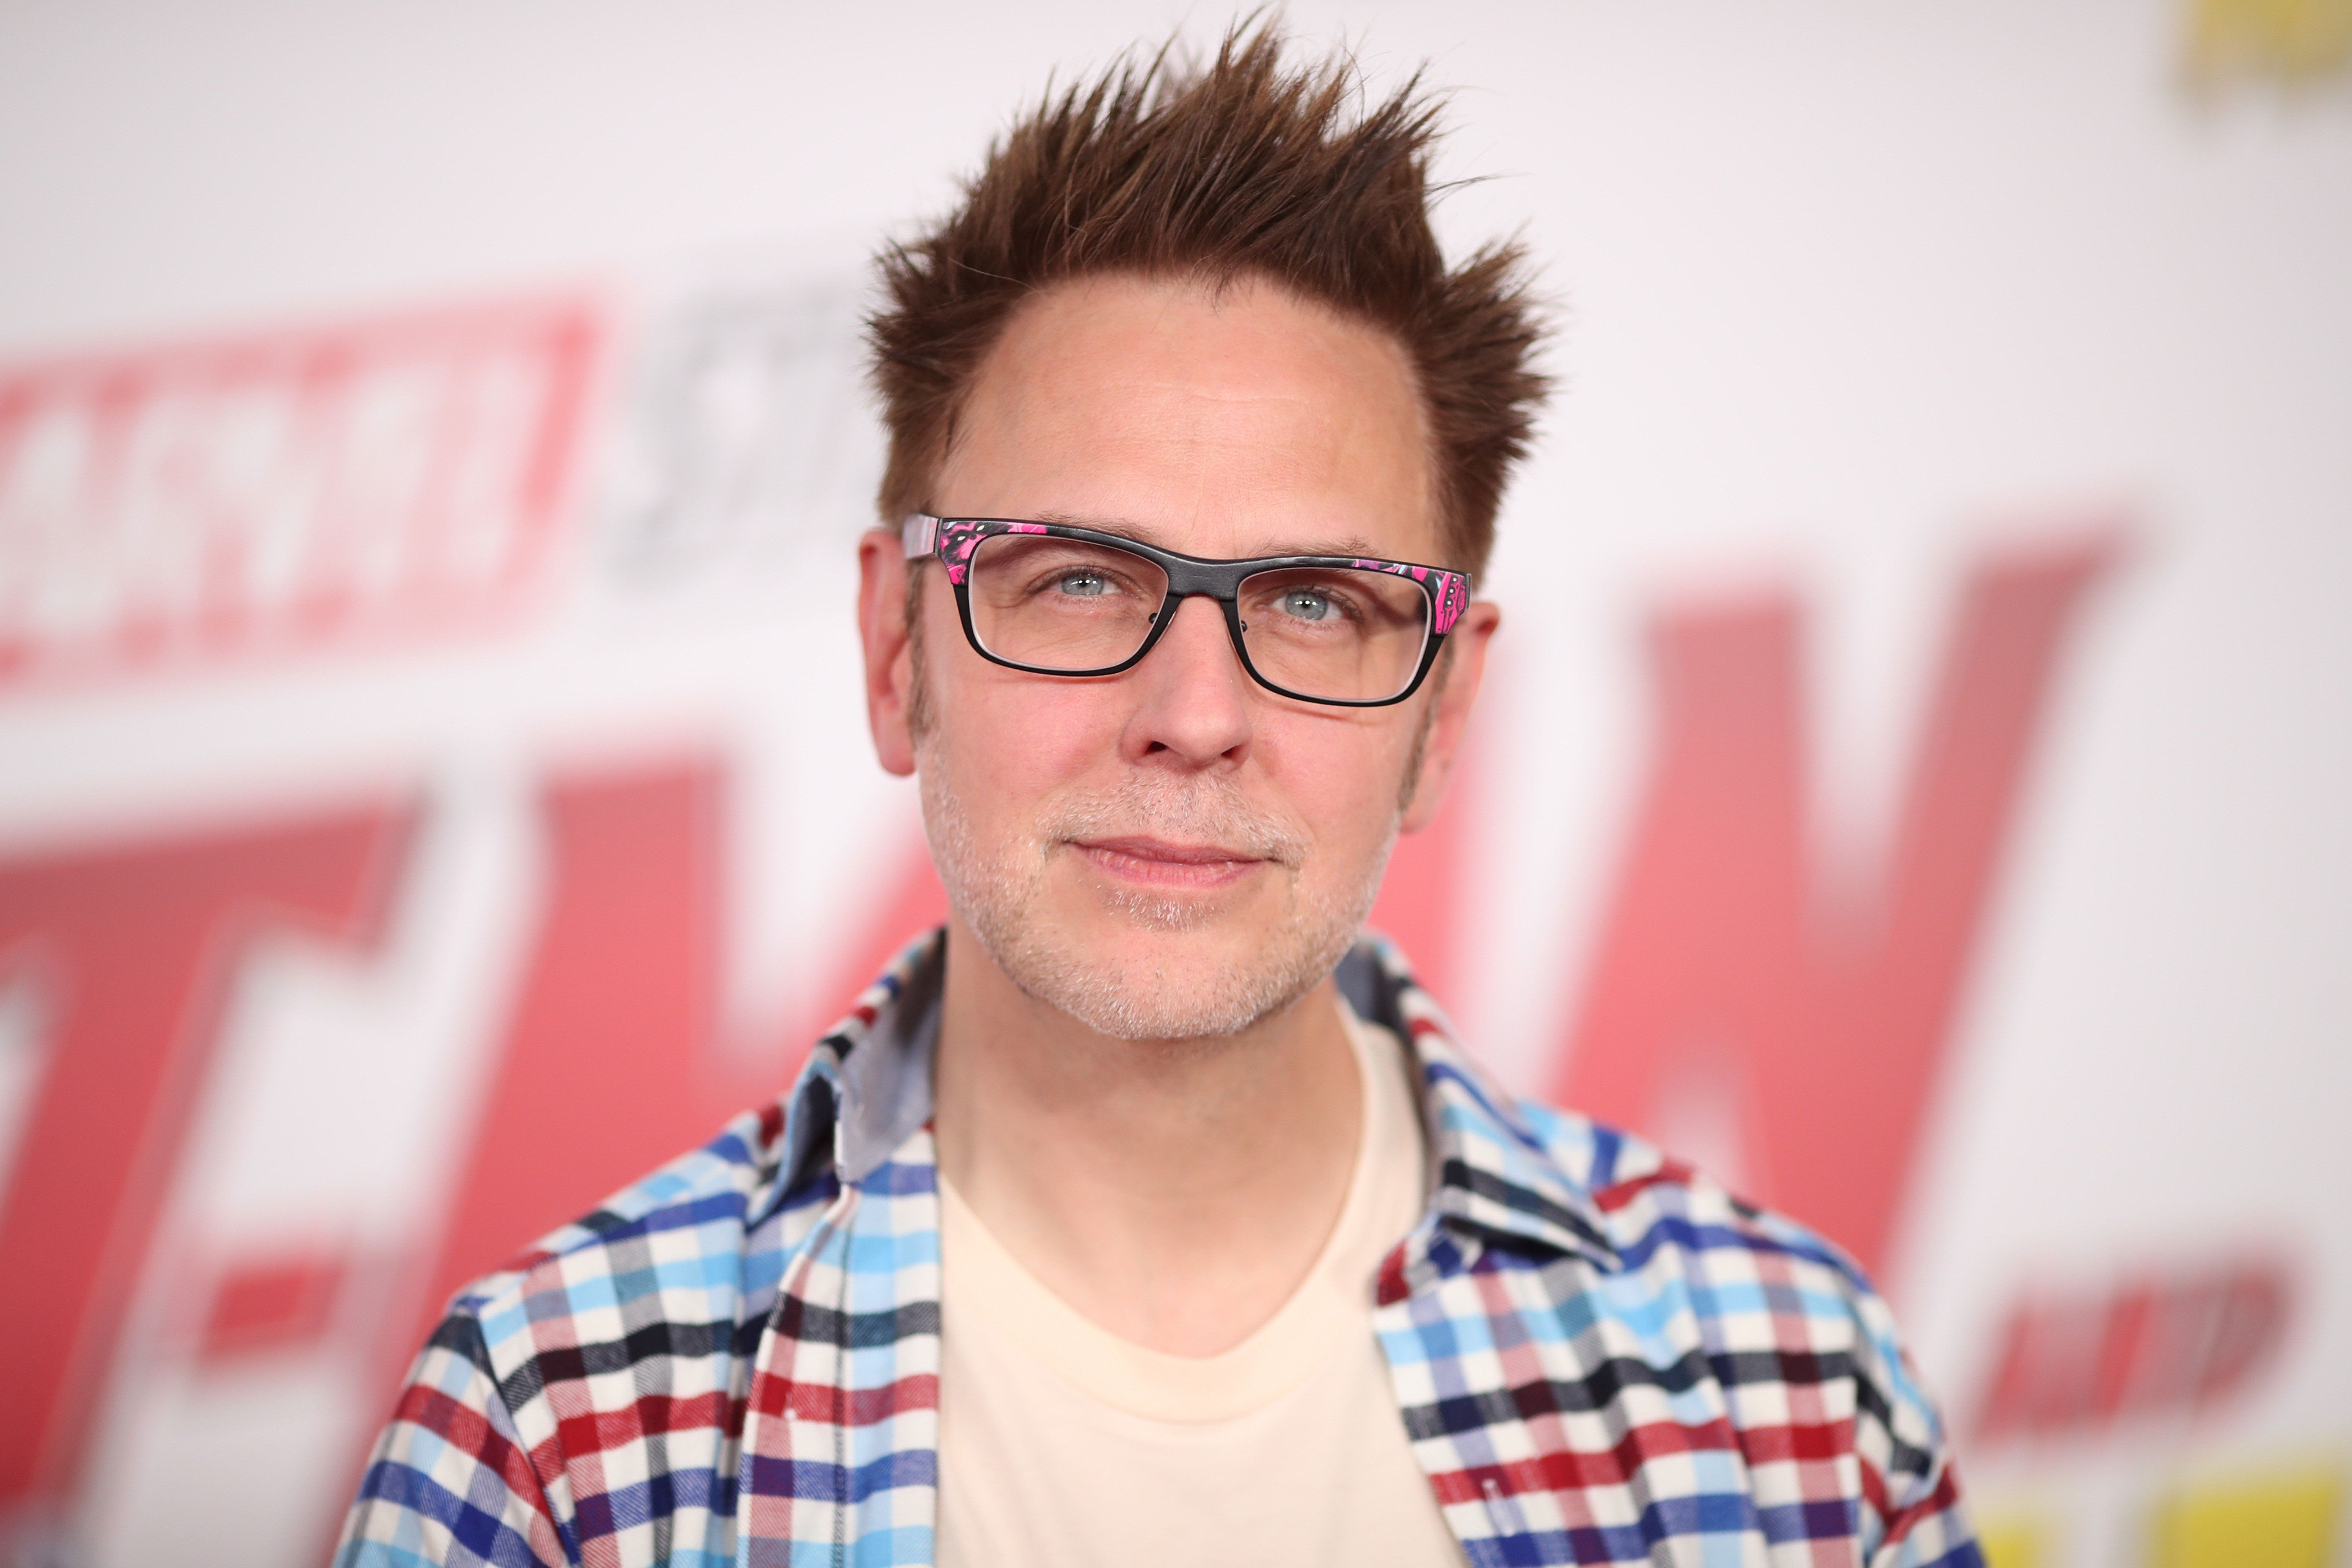 JAMES GUNN Off GUARDIANS OF THE GALAXY VOL. 3 For 'Offensive' Tweets